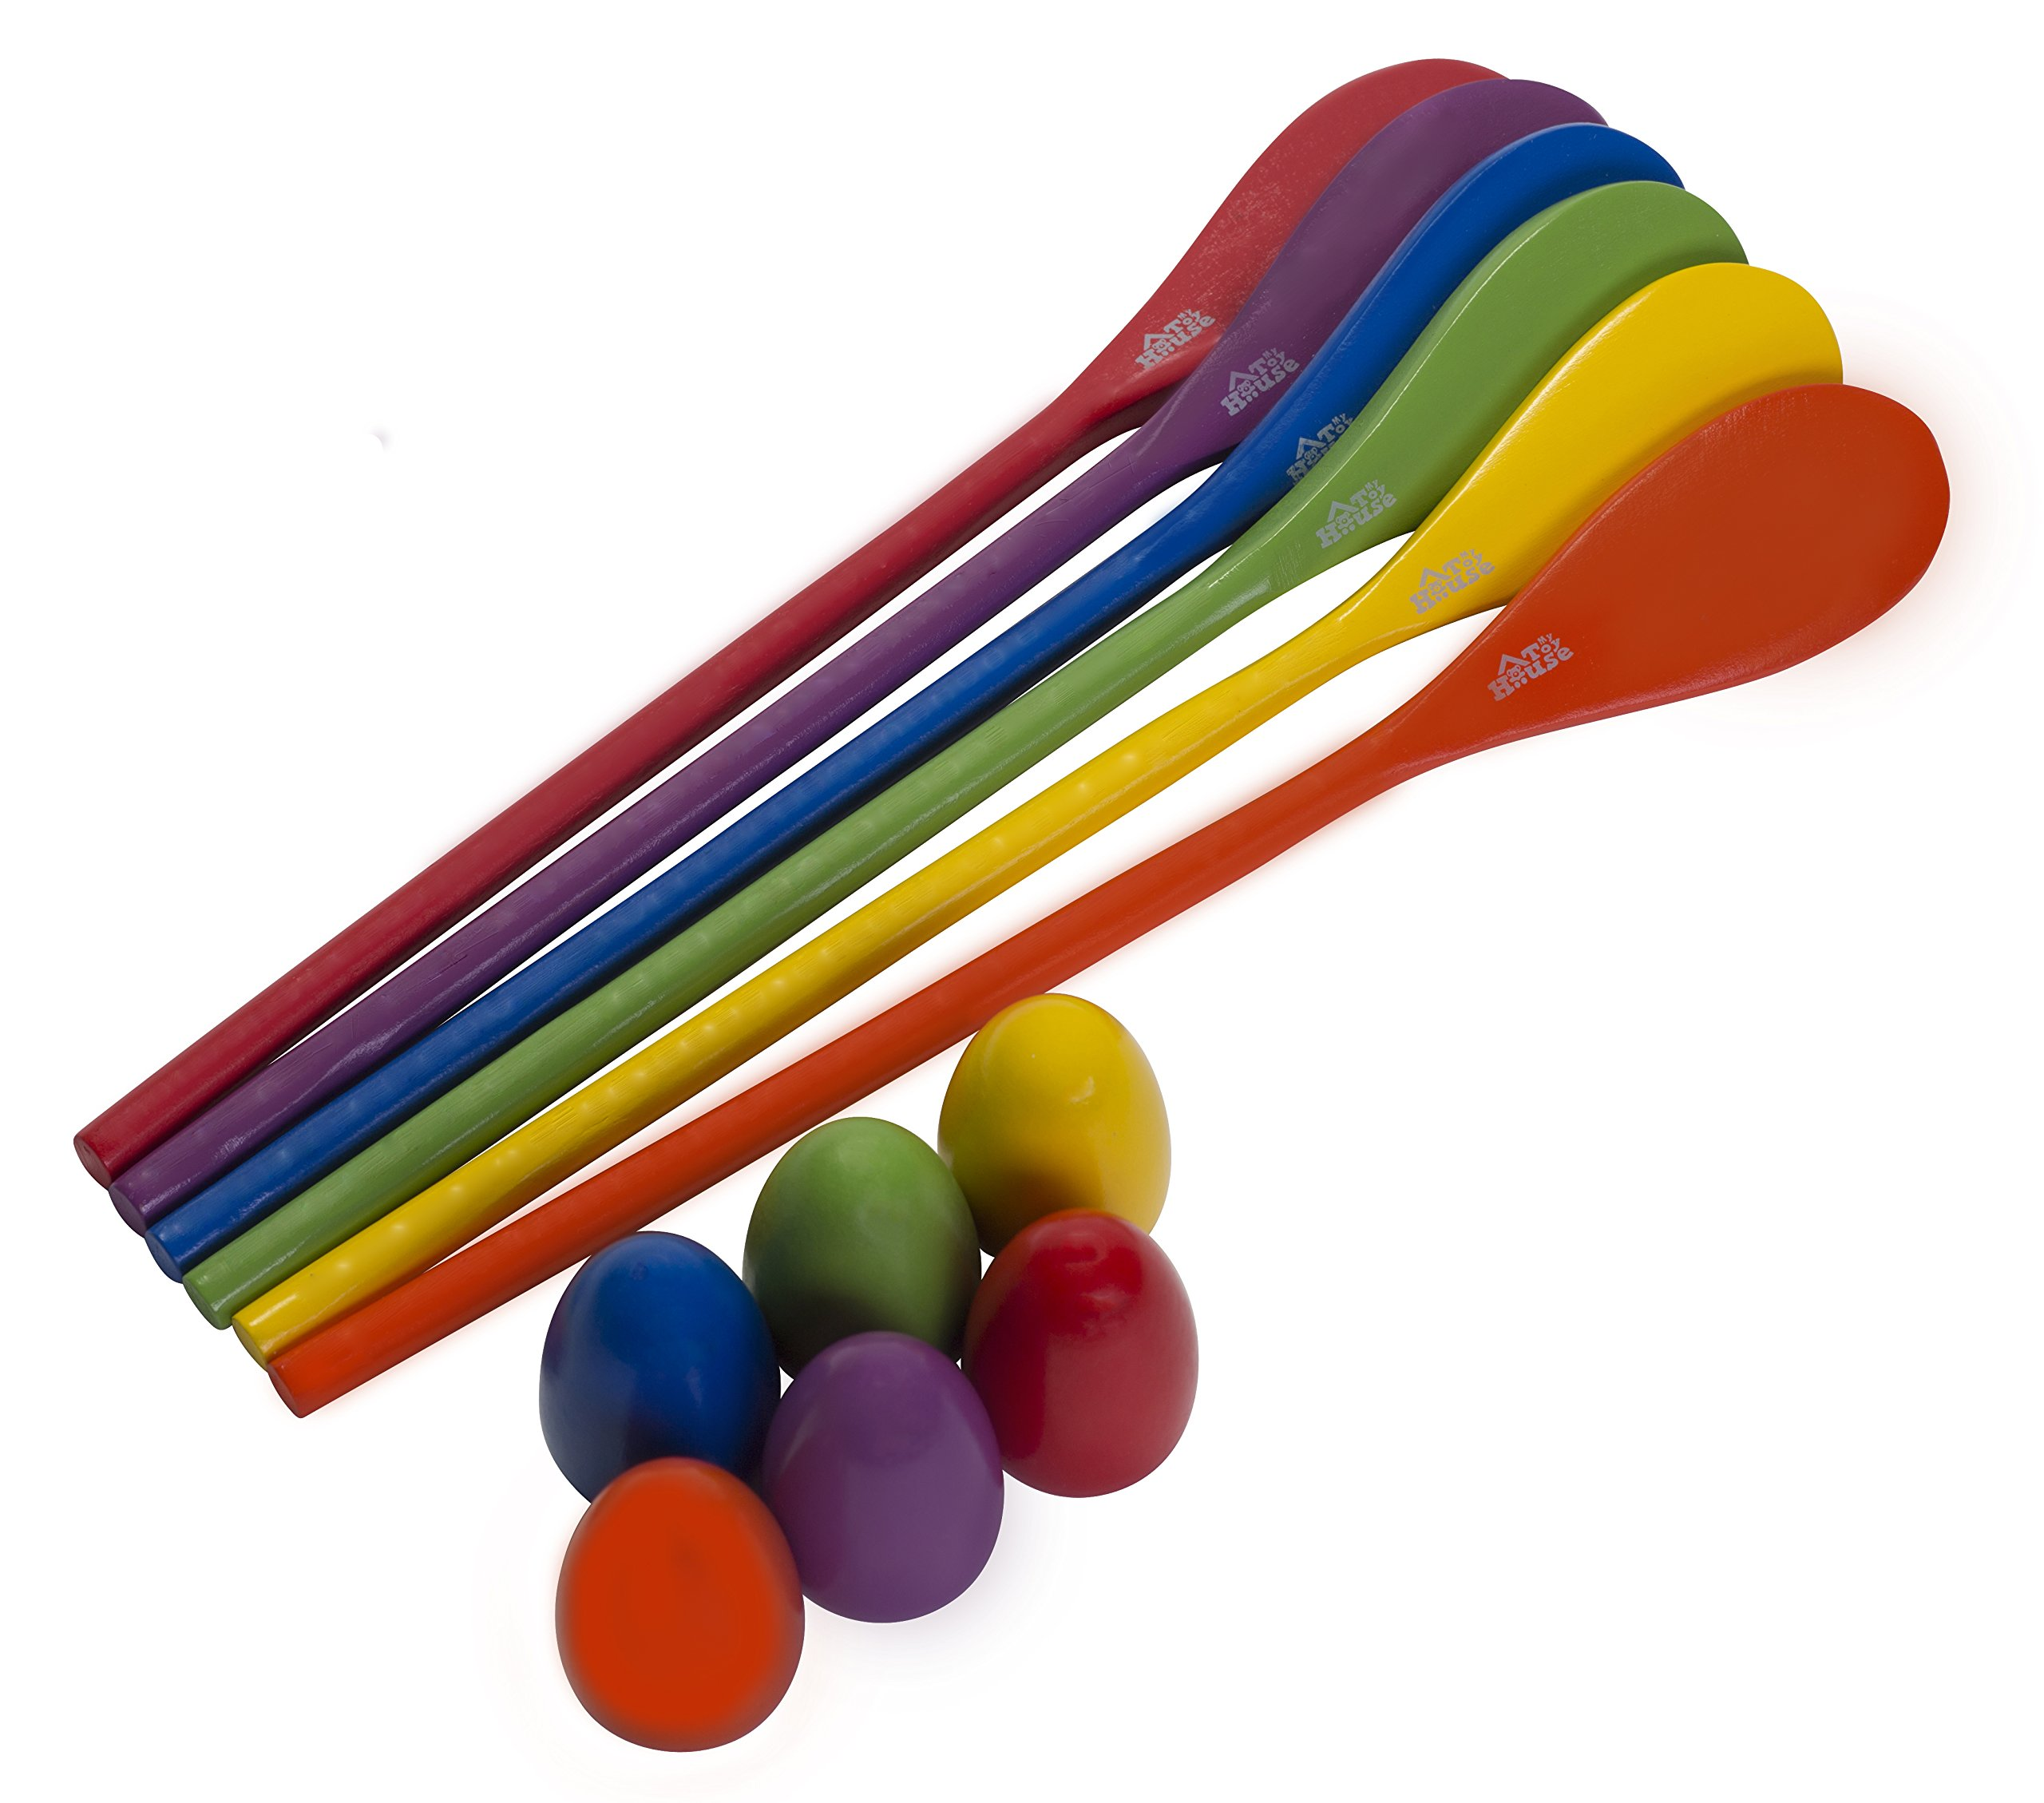 Egg and Spoon Race Game - 6 Eggs and 6 Spoons - Made of the Finest Wood - Fun Game for Parties, Birthdays etc. - Durable, Lightweight | Six Assorted Colors by My Toy House